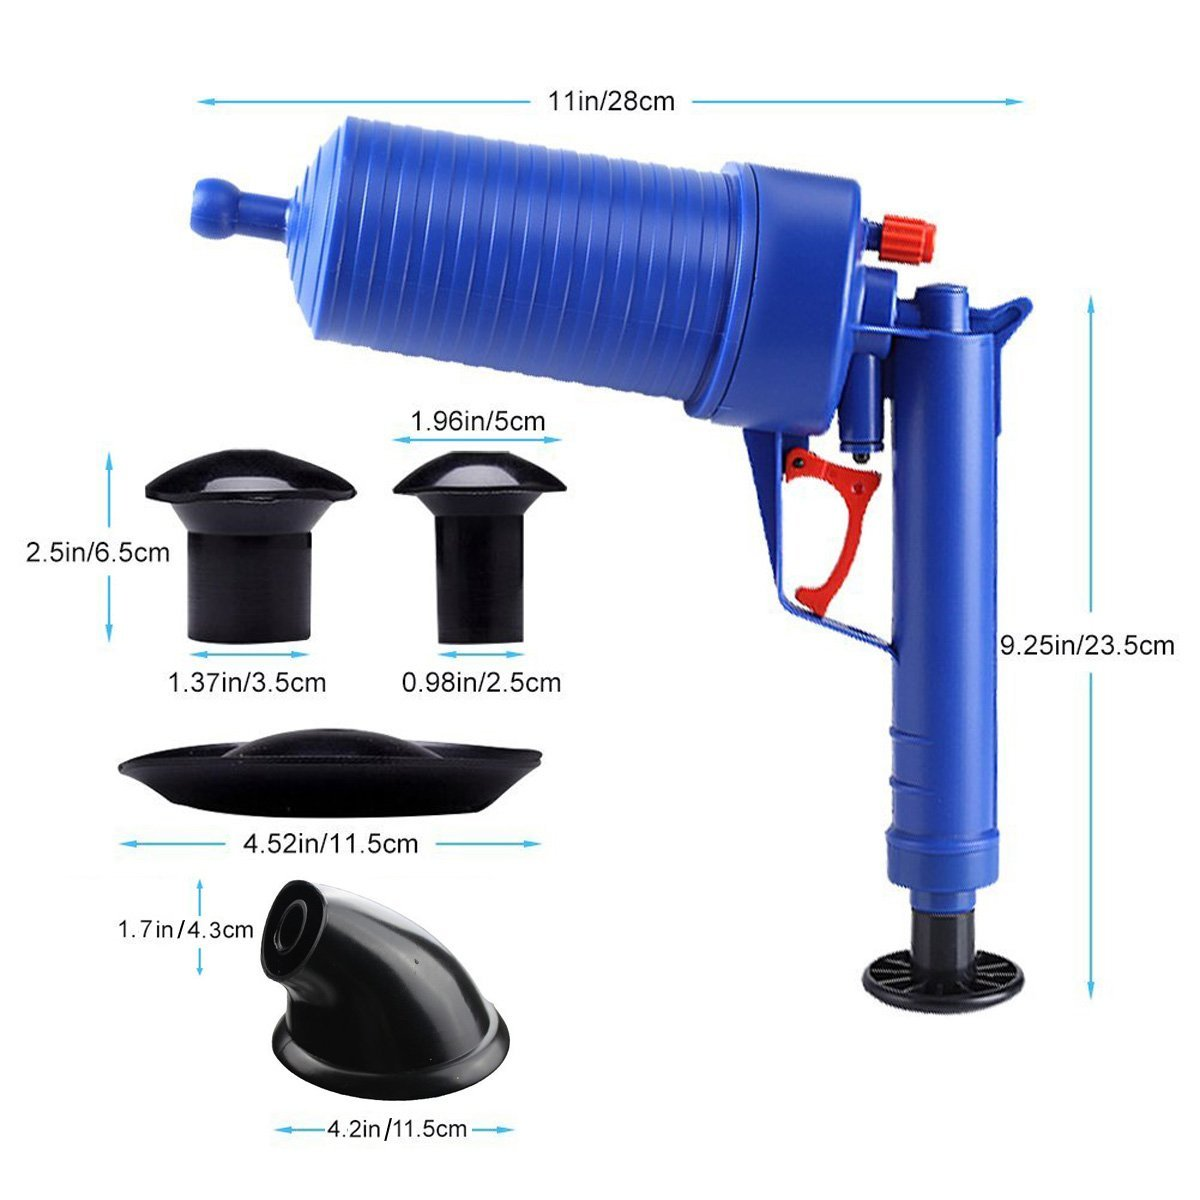 Hot Air Power Drain Blaster gun High Pressure Powerful Manual sink Plunger Opener cleaner pump for Toilets showers for bathroom in Drain Cleaners from Home Garden